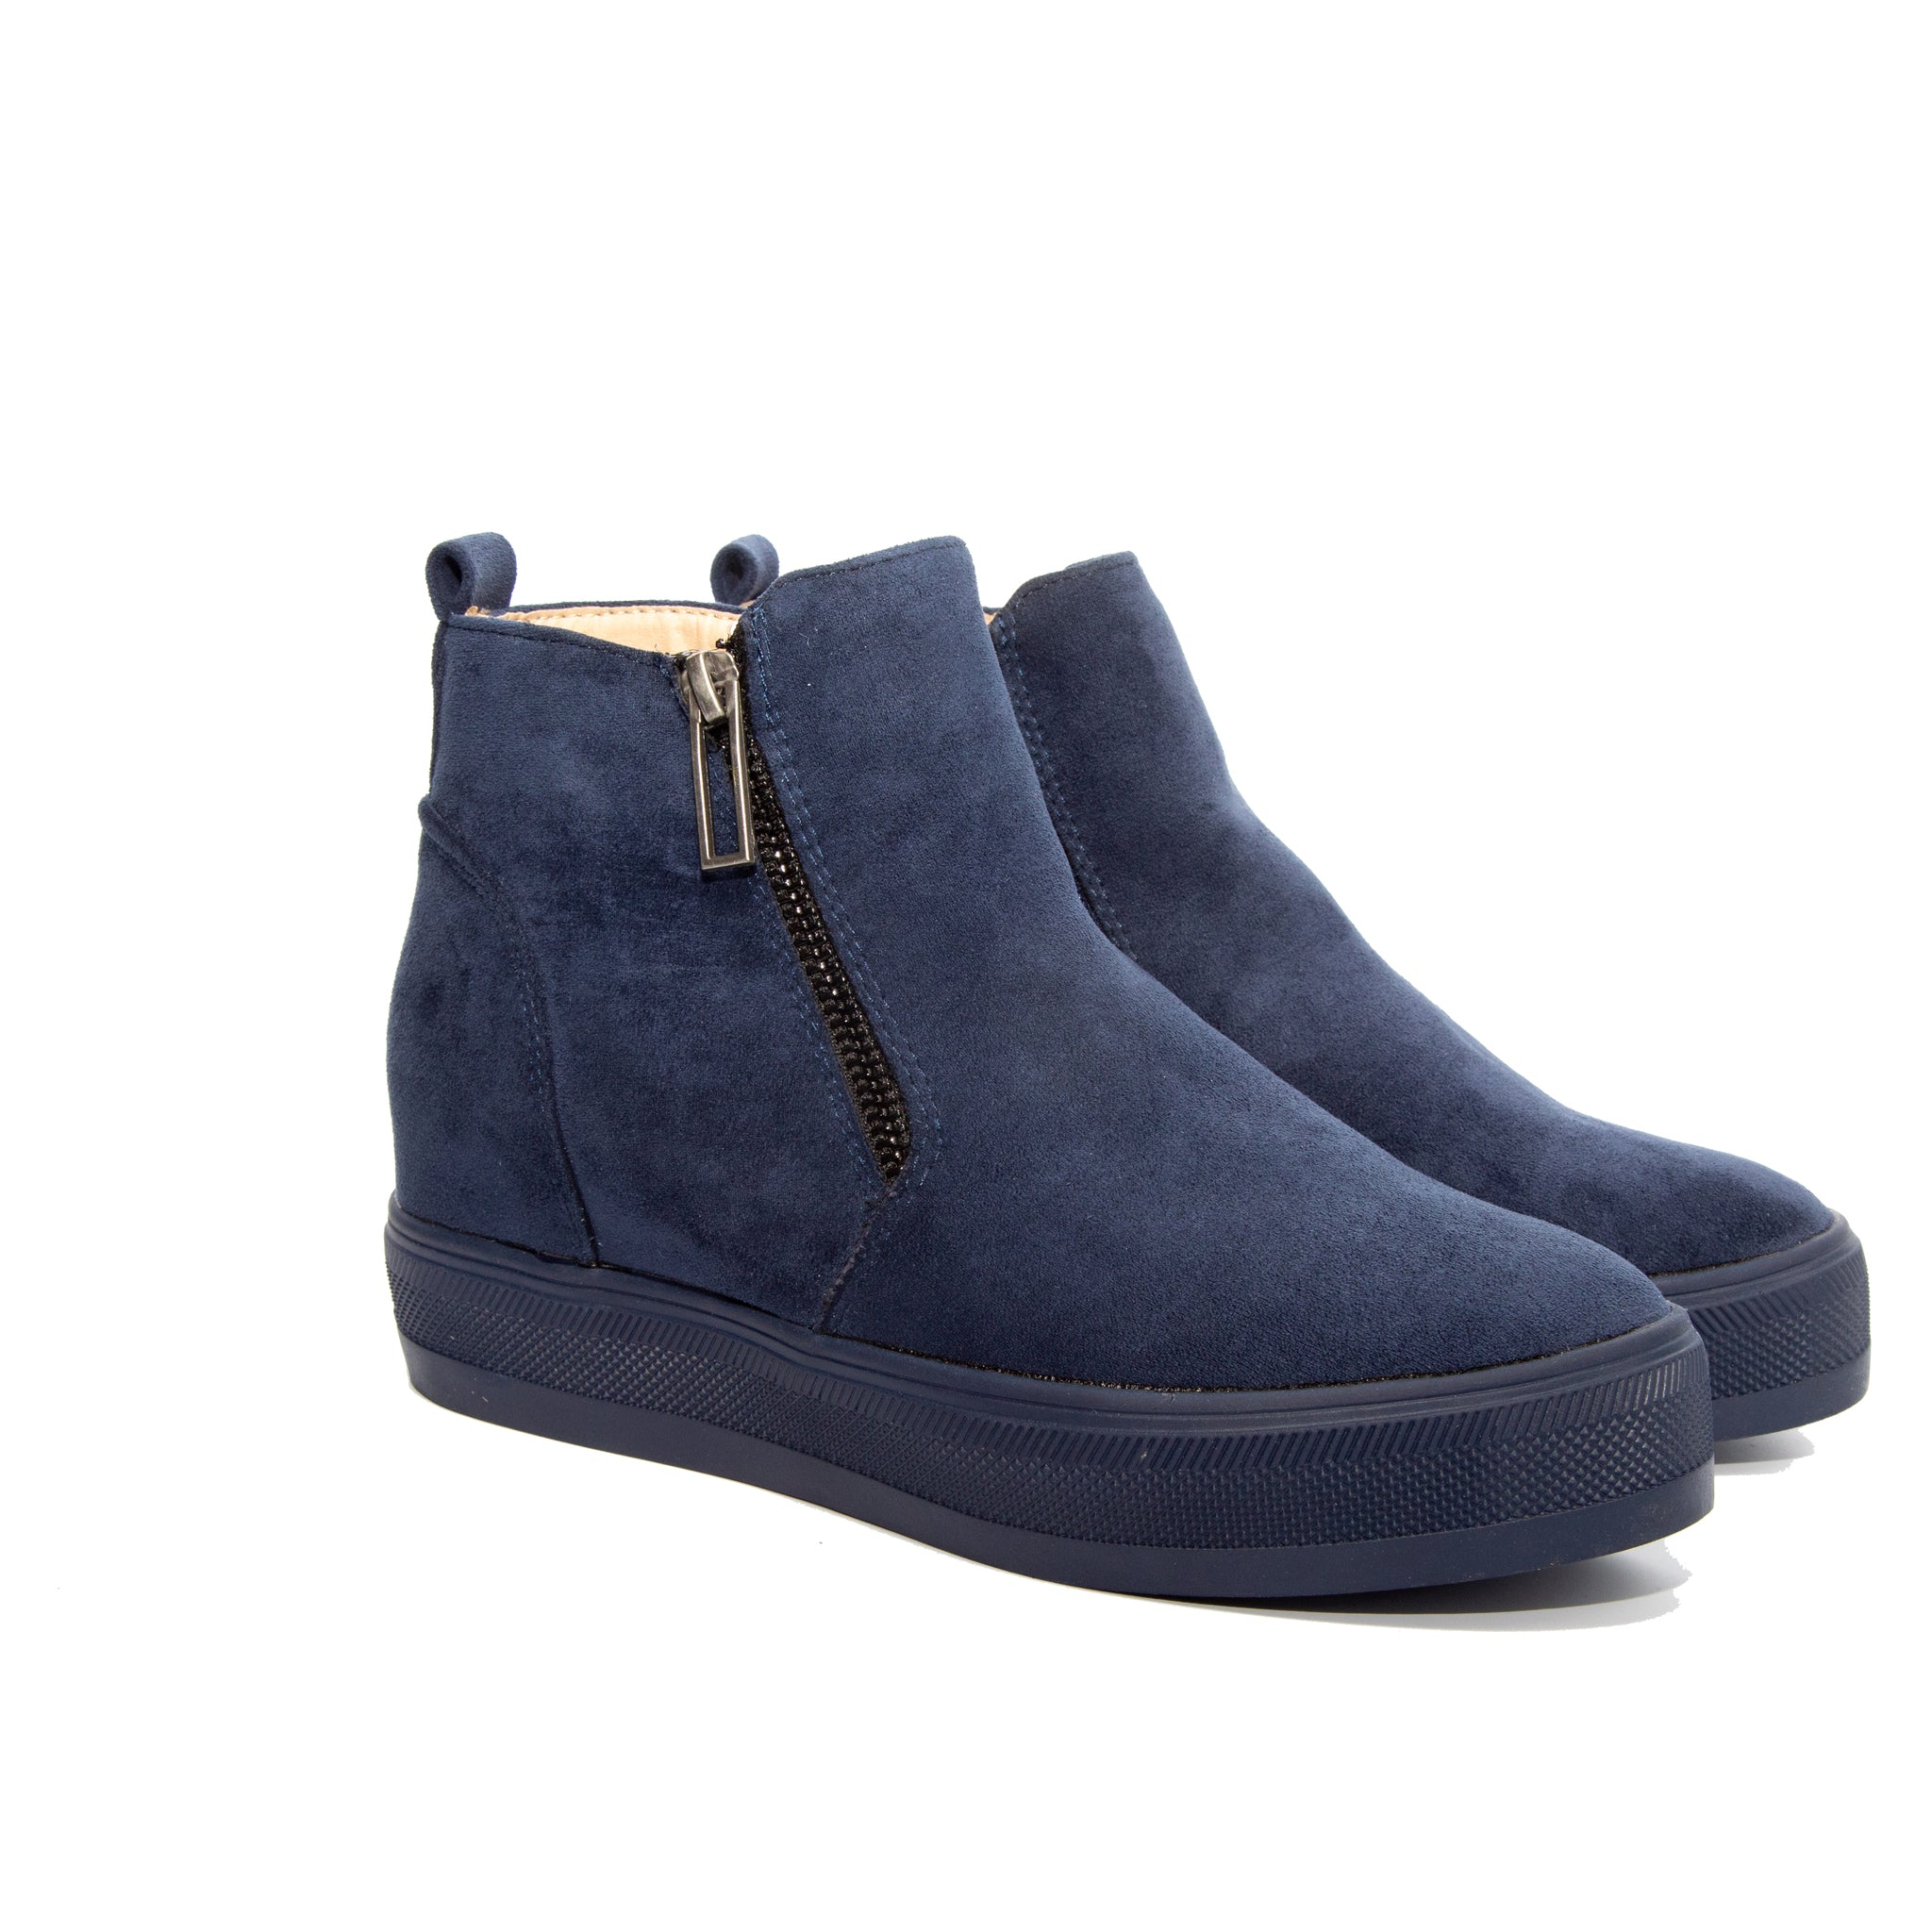 Solo by Dolce Nome | Flat Zipper Ankle Boots in Navy (pair view)